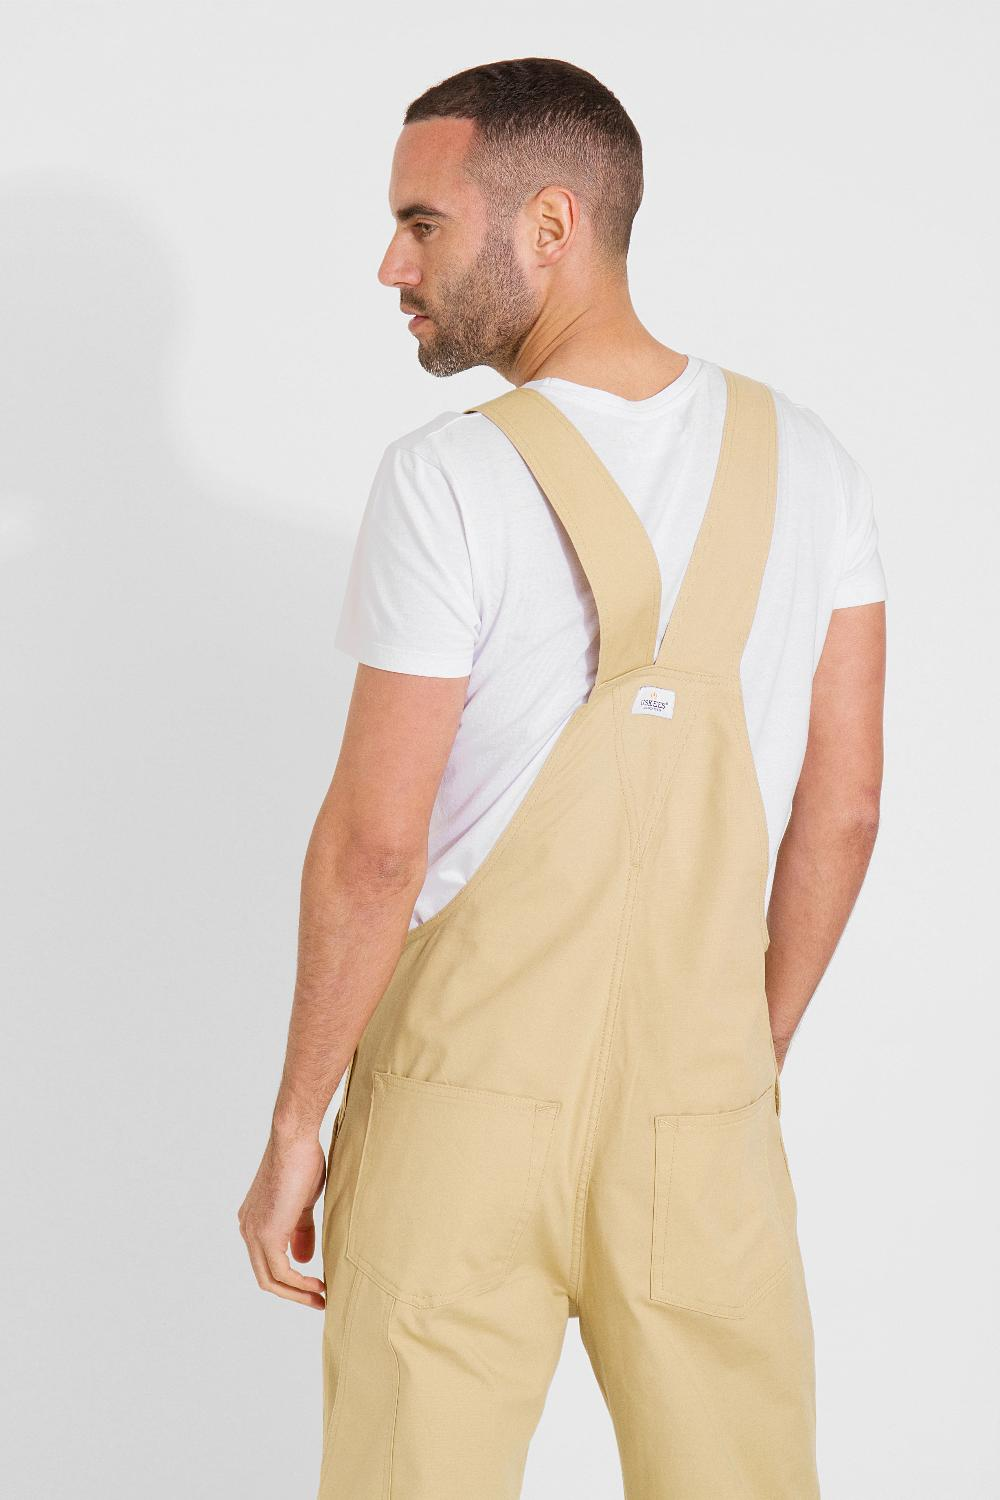 Looking to his left with back to camera focussing on top half of 'Christopher' brand dungaree shorts.